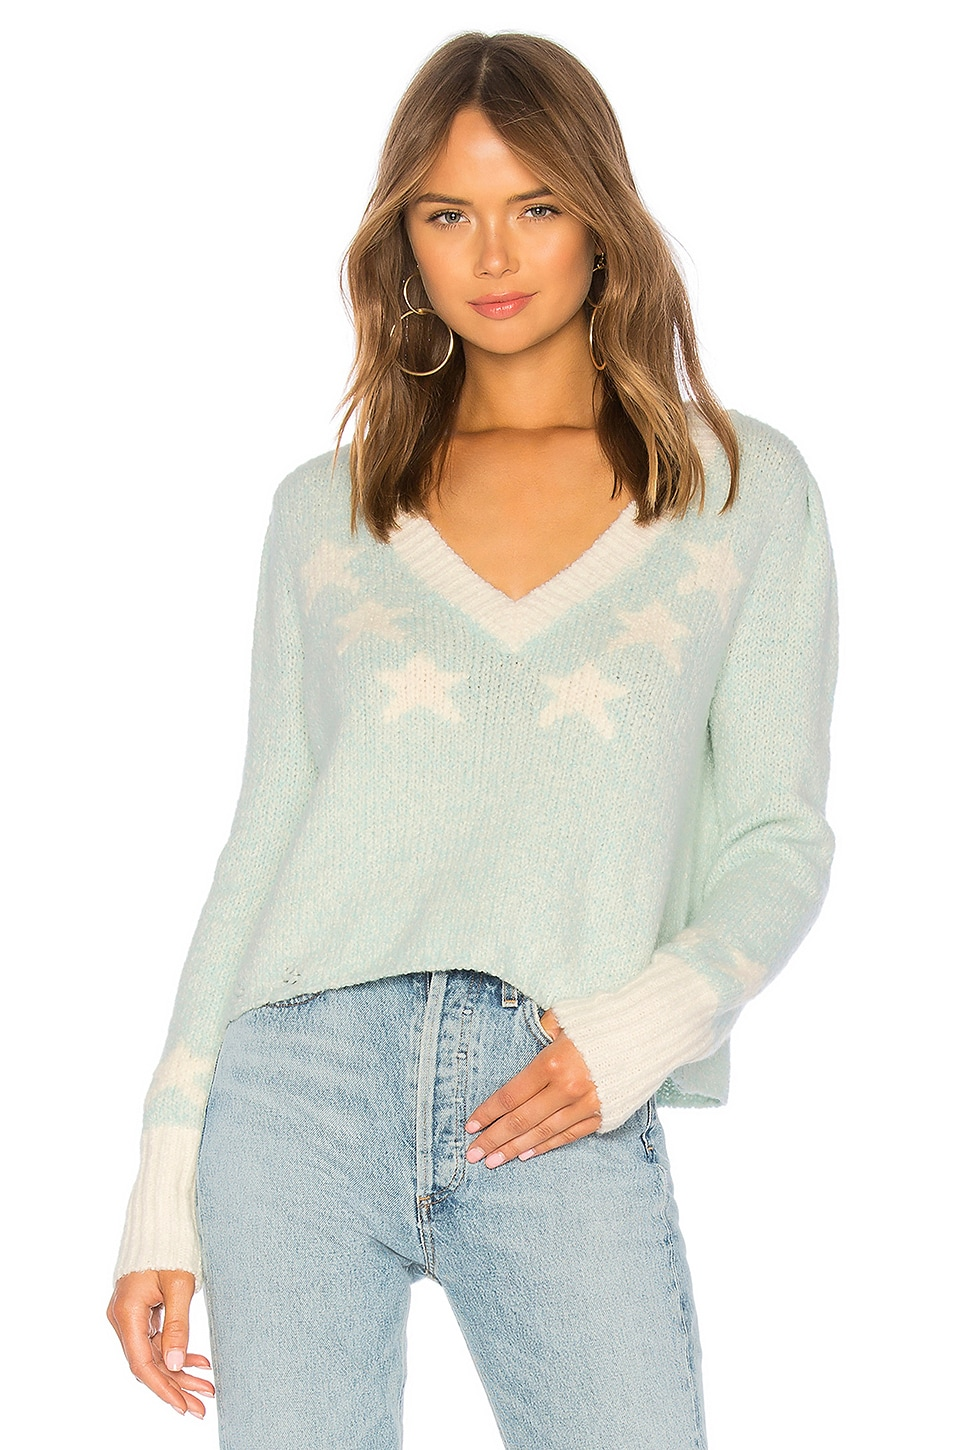 Wildfox Couture Star Girl Ace Sweater in Honolulu Blue